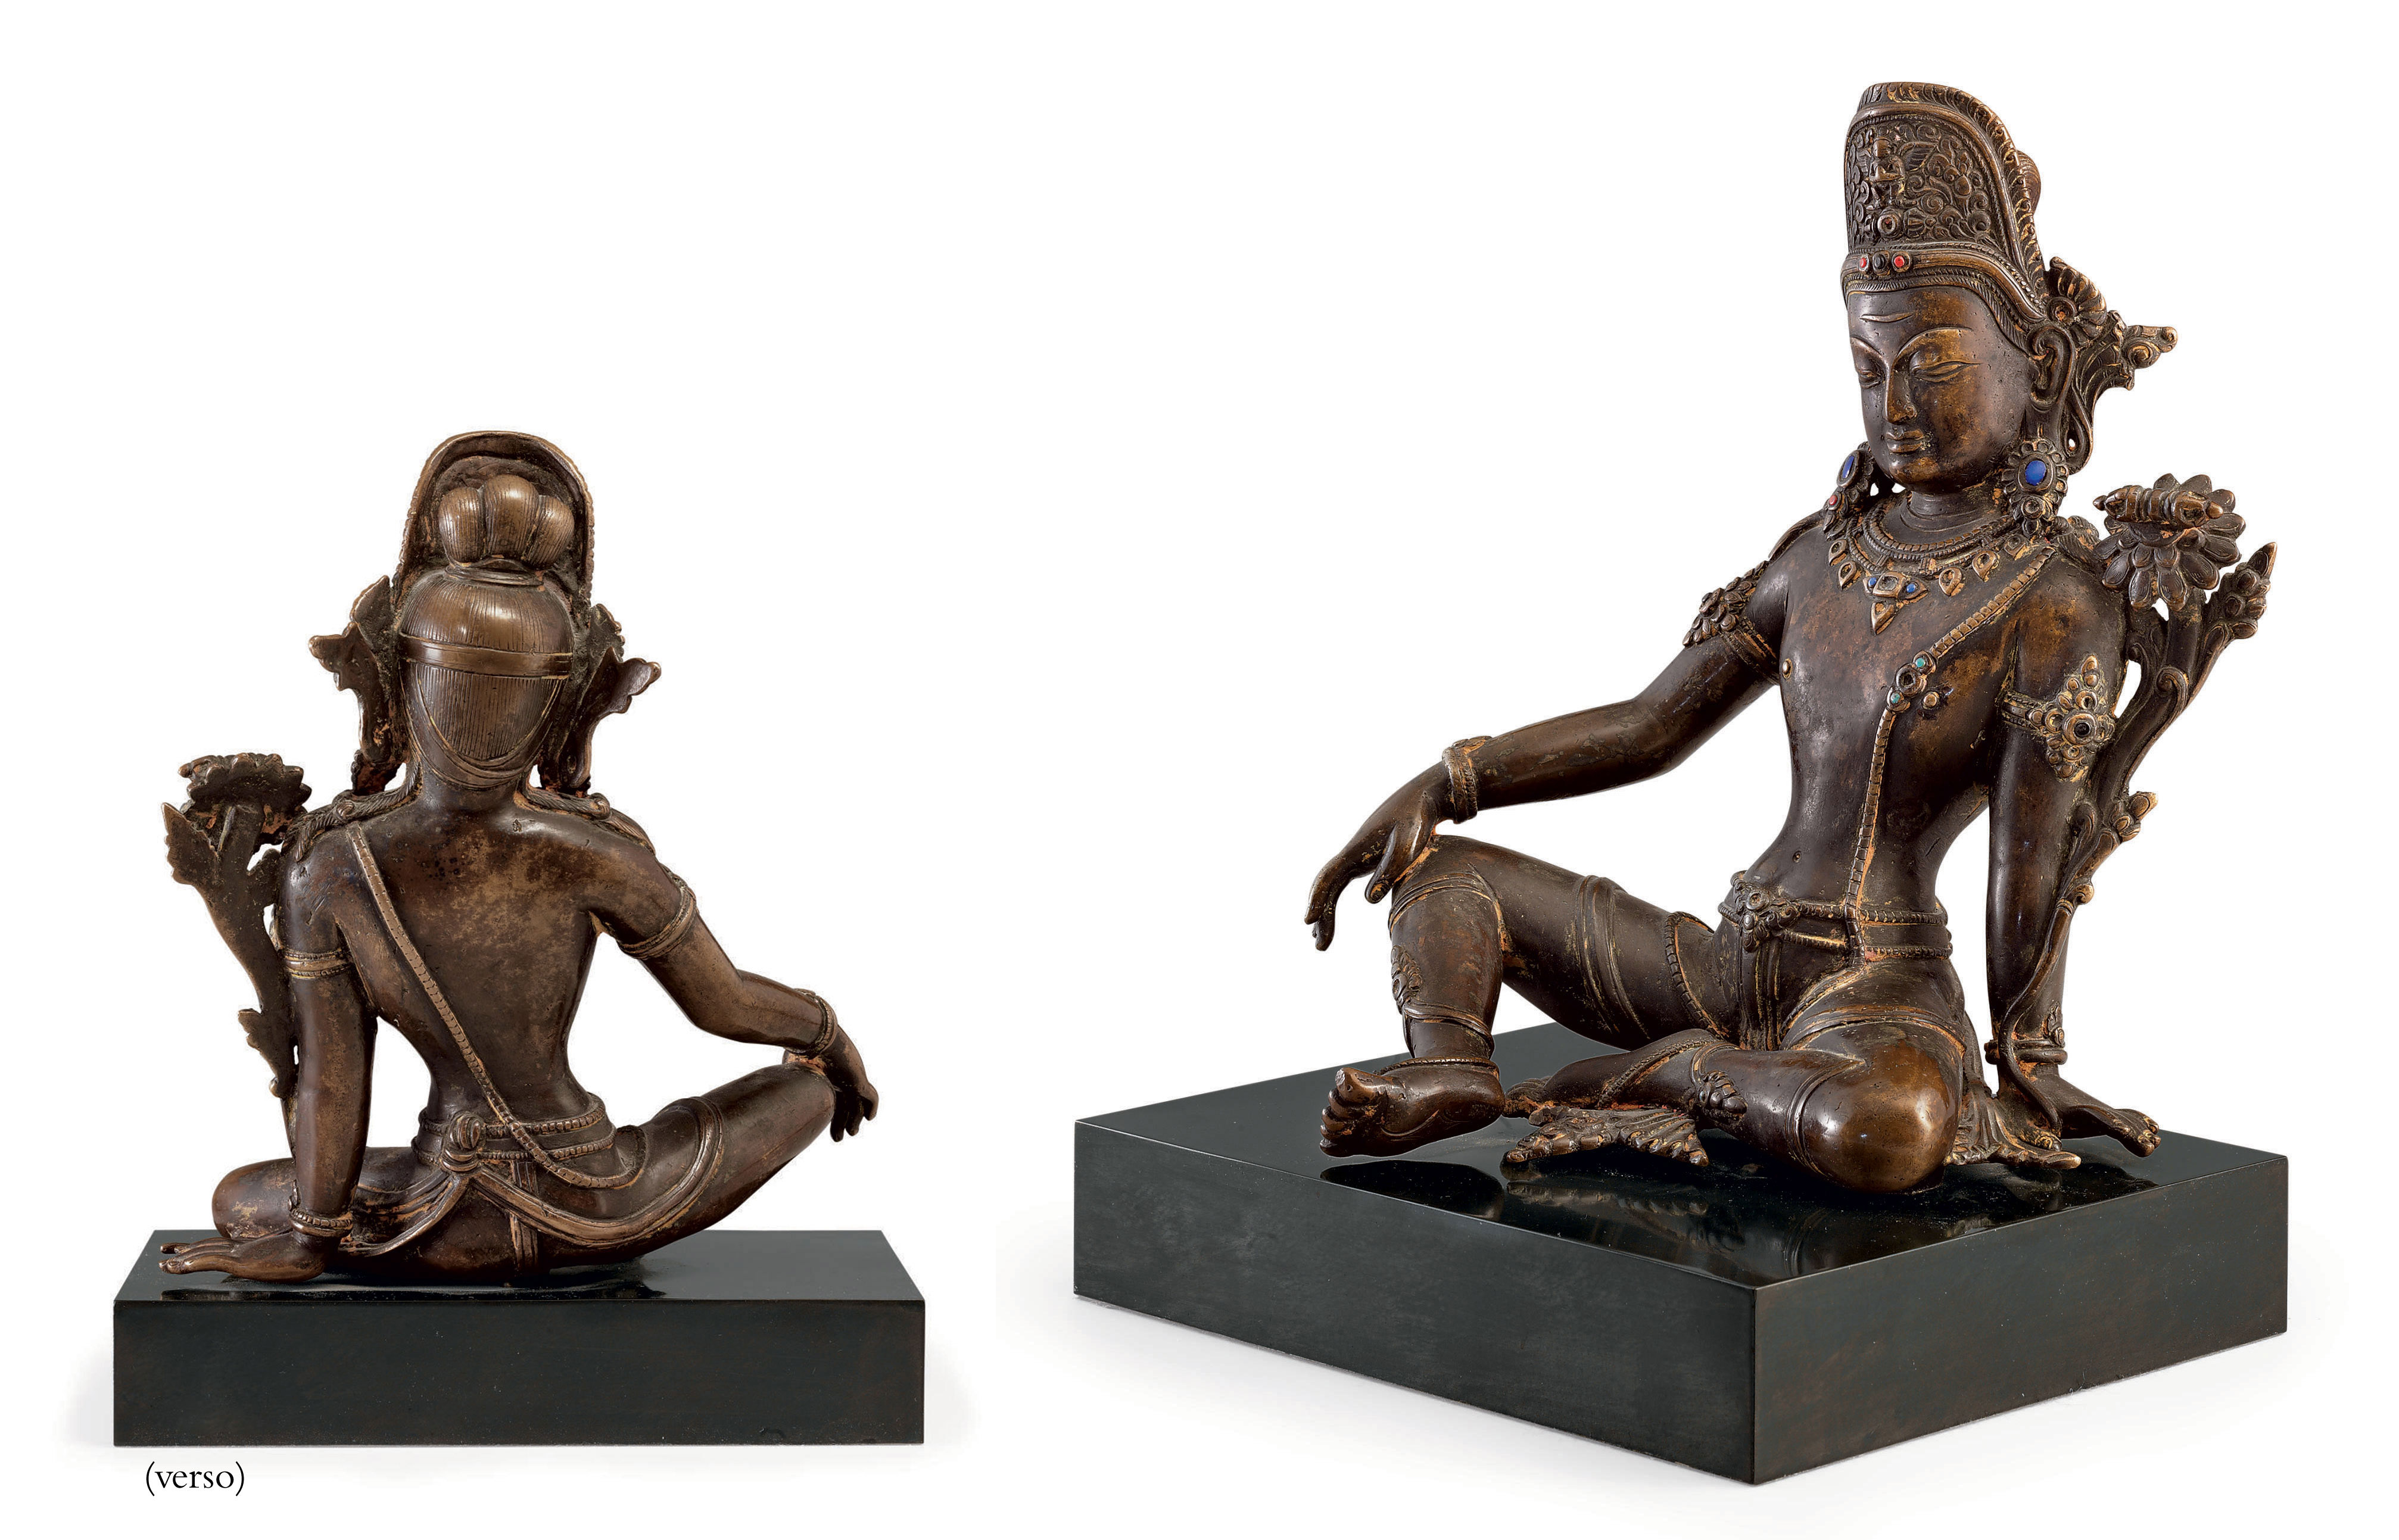 A copper figure of Indra